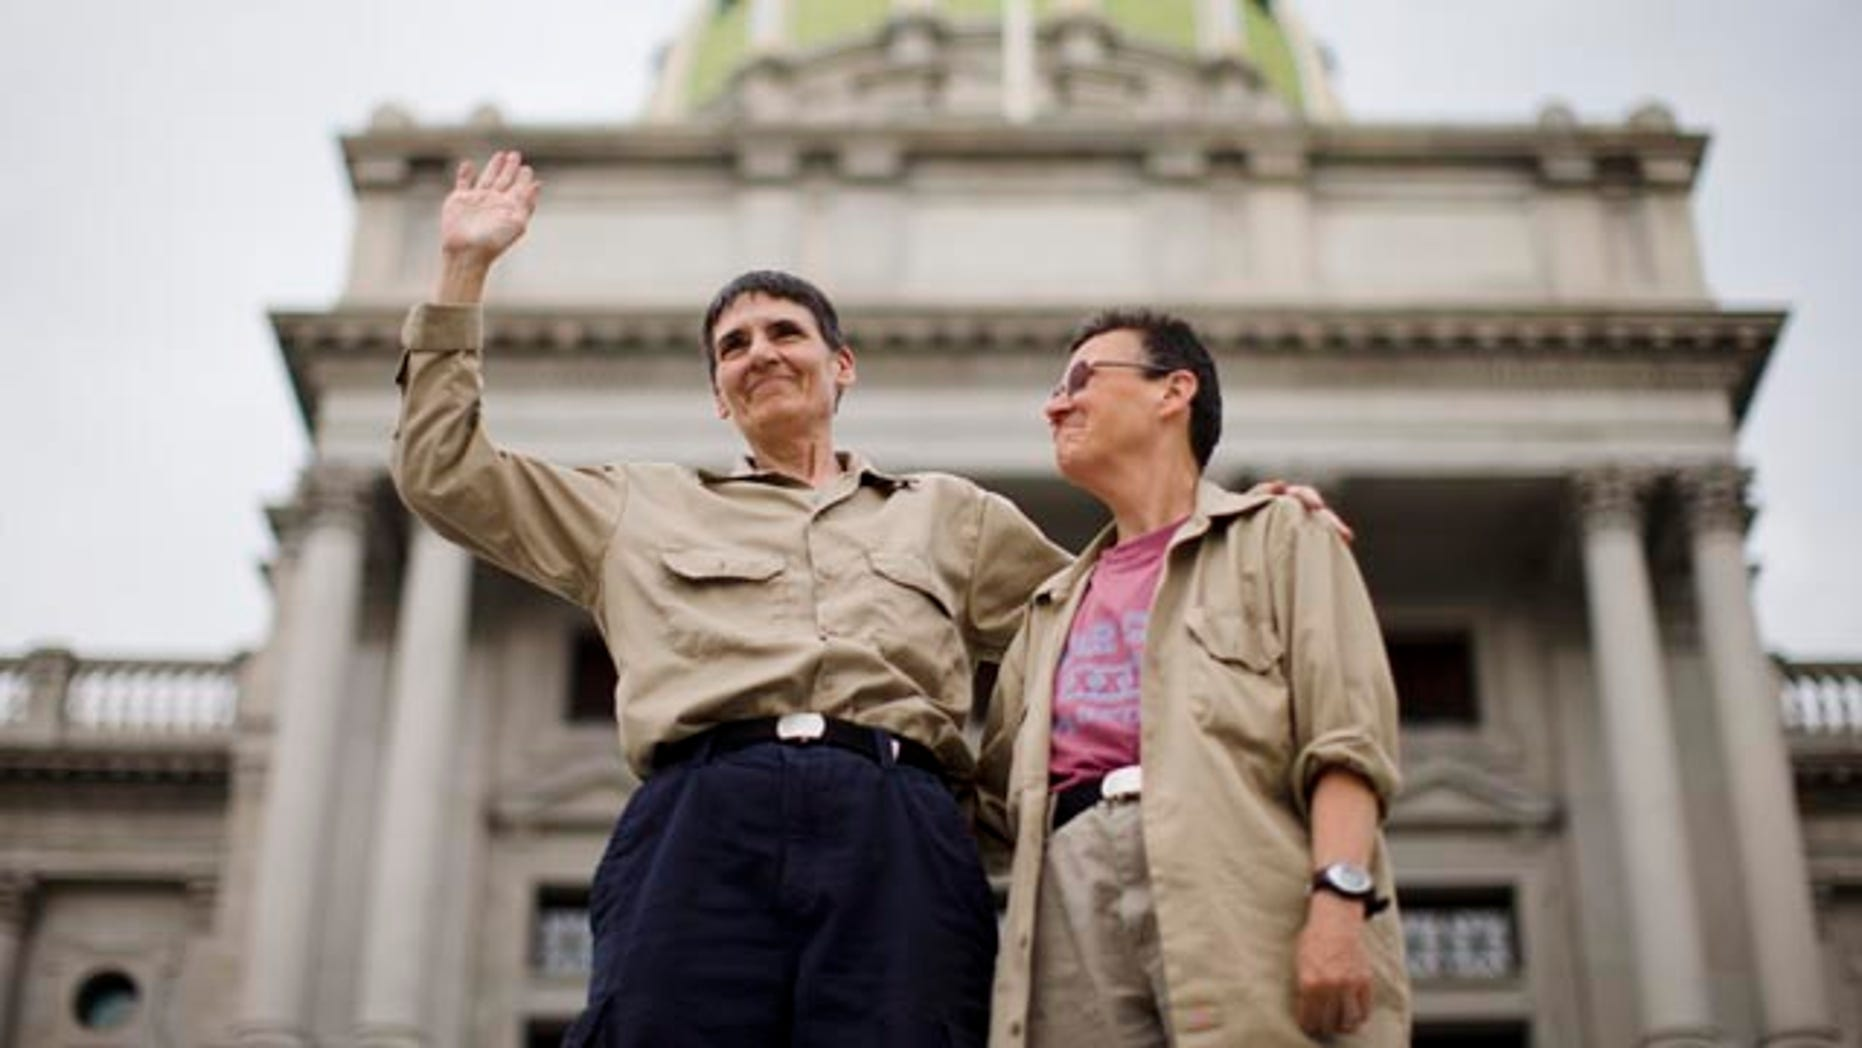 May 20 ,2014: Julie Lobur, left, and Marla Cattermole look out on supporters of gay marriage at a rally on the steps of the state Capitol. (AP Photo/Matt Rourke)